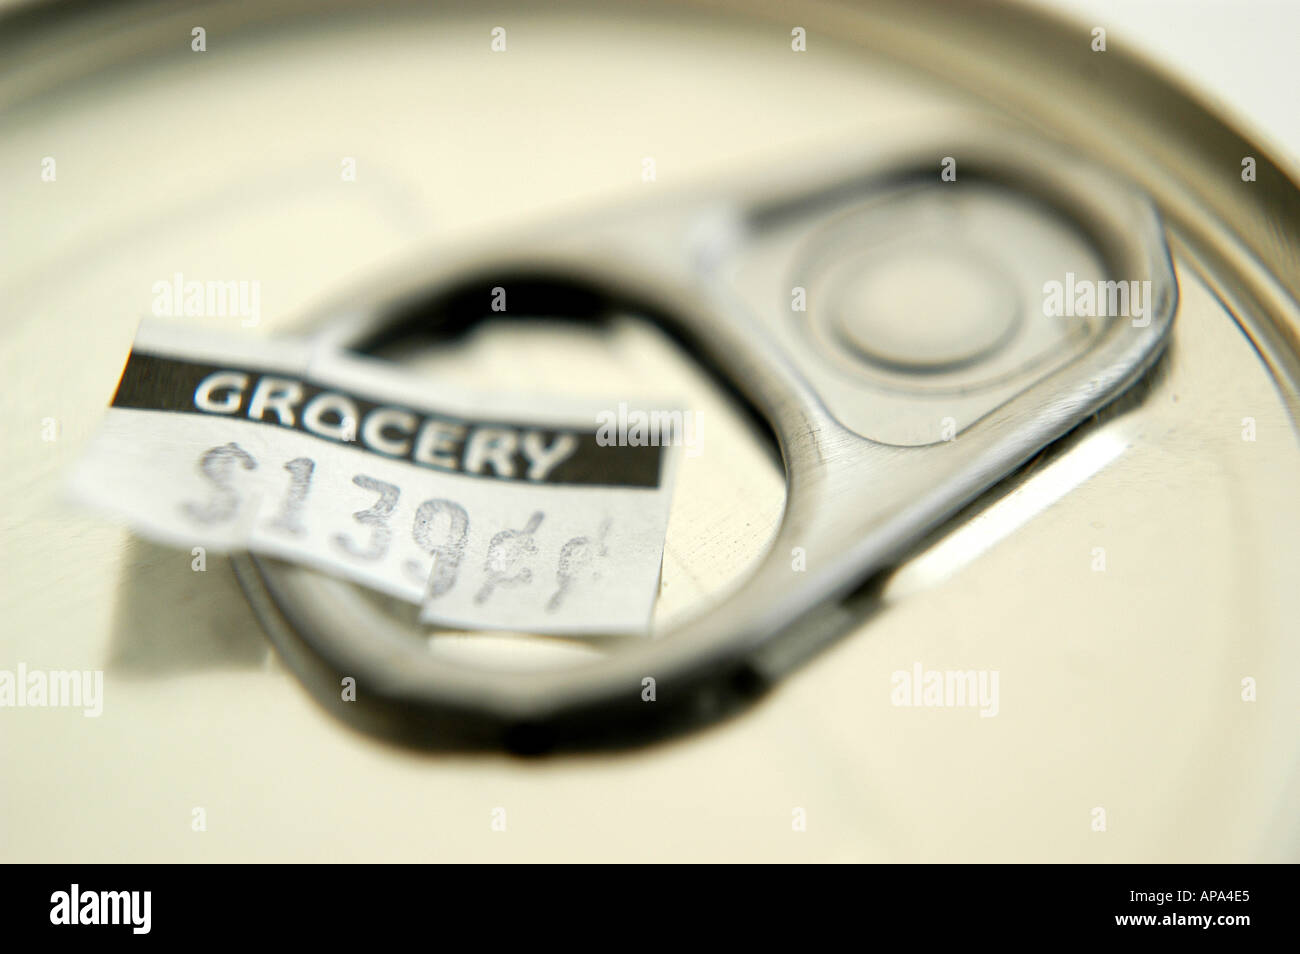 Close up aluminum can pull tab with GROCERY price tag HORIZONTAL - Stock Image